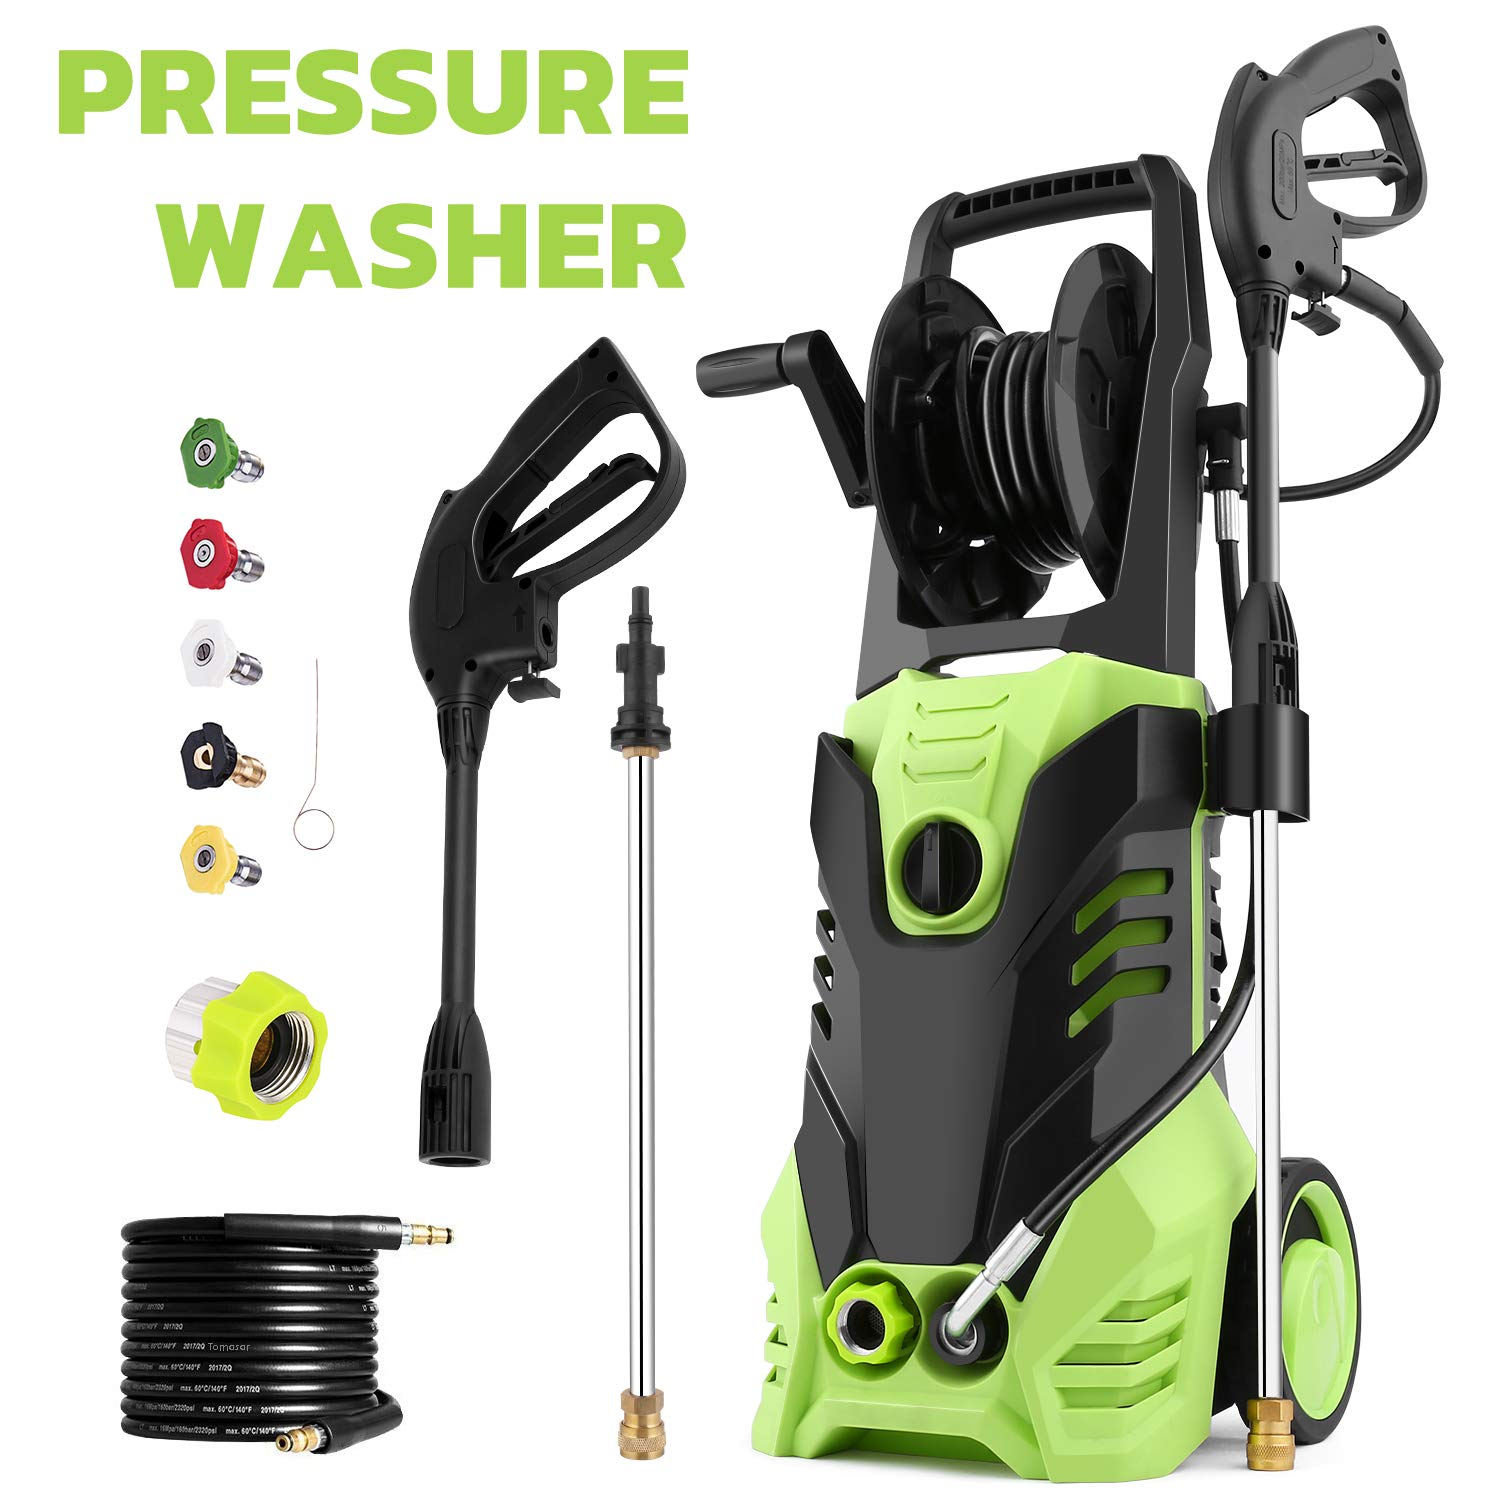 Homdox 2880 PSI Electric Pressure Washer 1.7 GPM High Pressure Washer 1800W Electric Power Washer Cleaner with Hose Reel 5 Nozzles